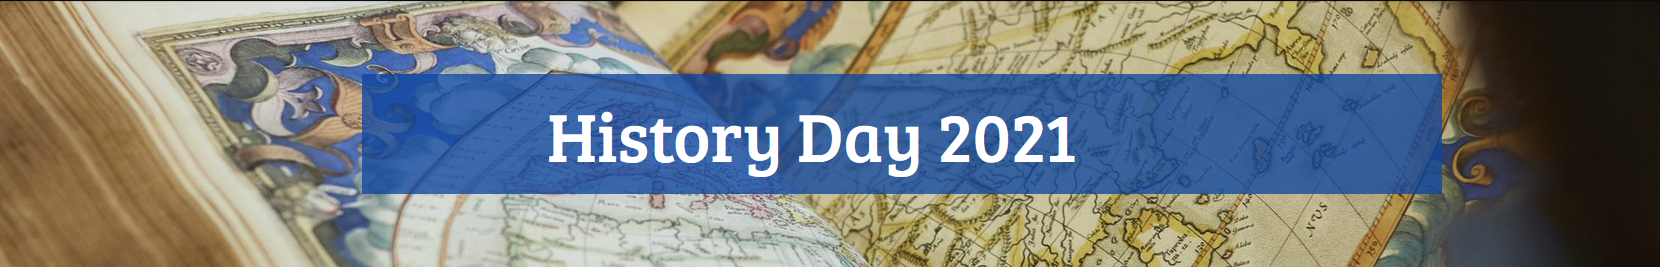 History Day 2021 on a background an early printed map